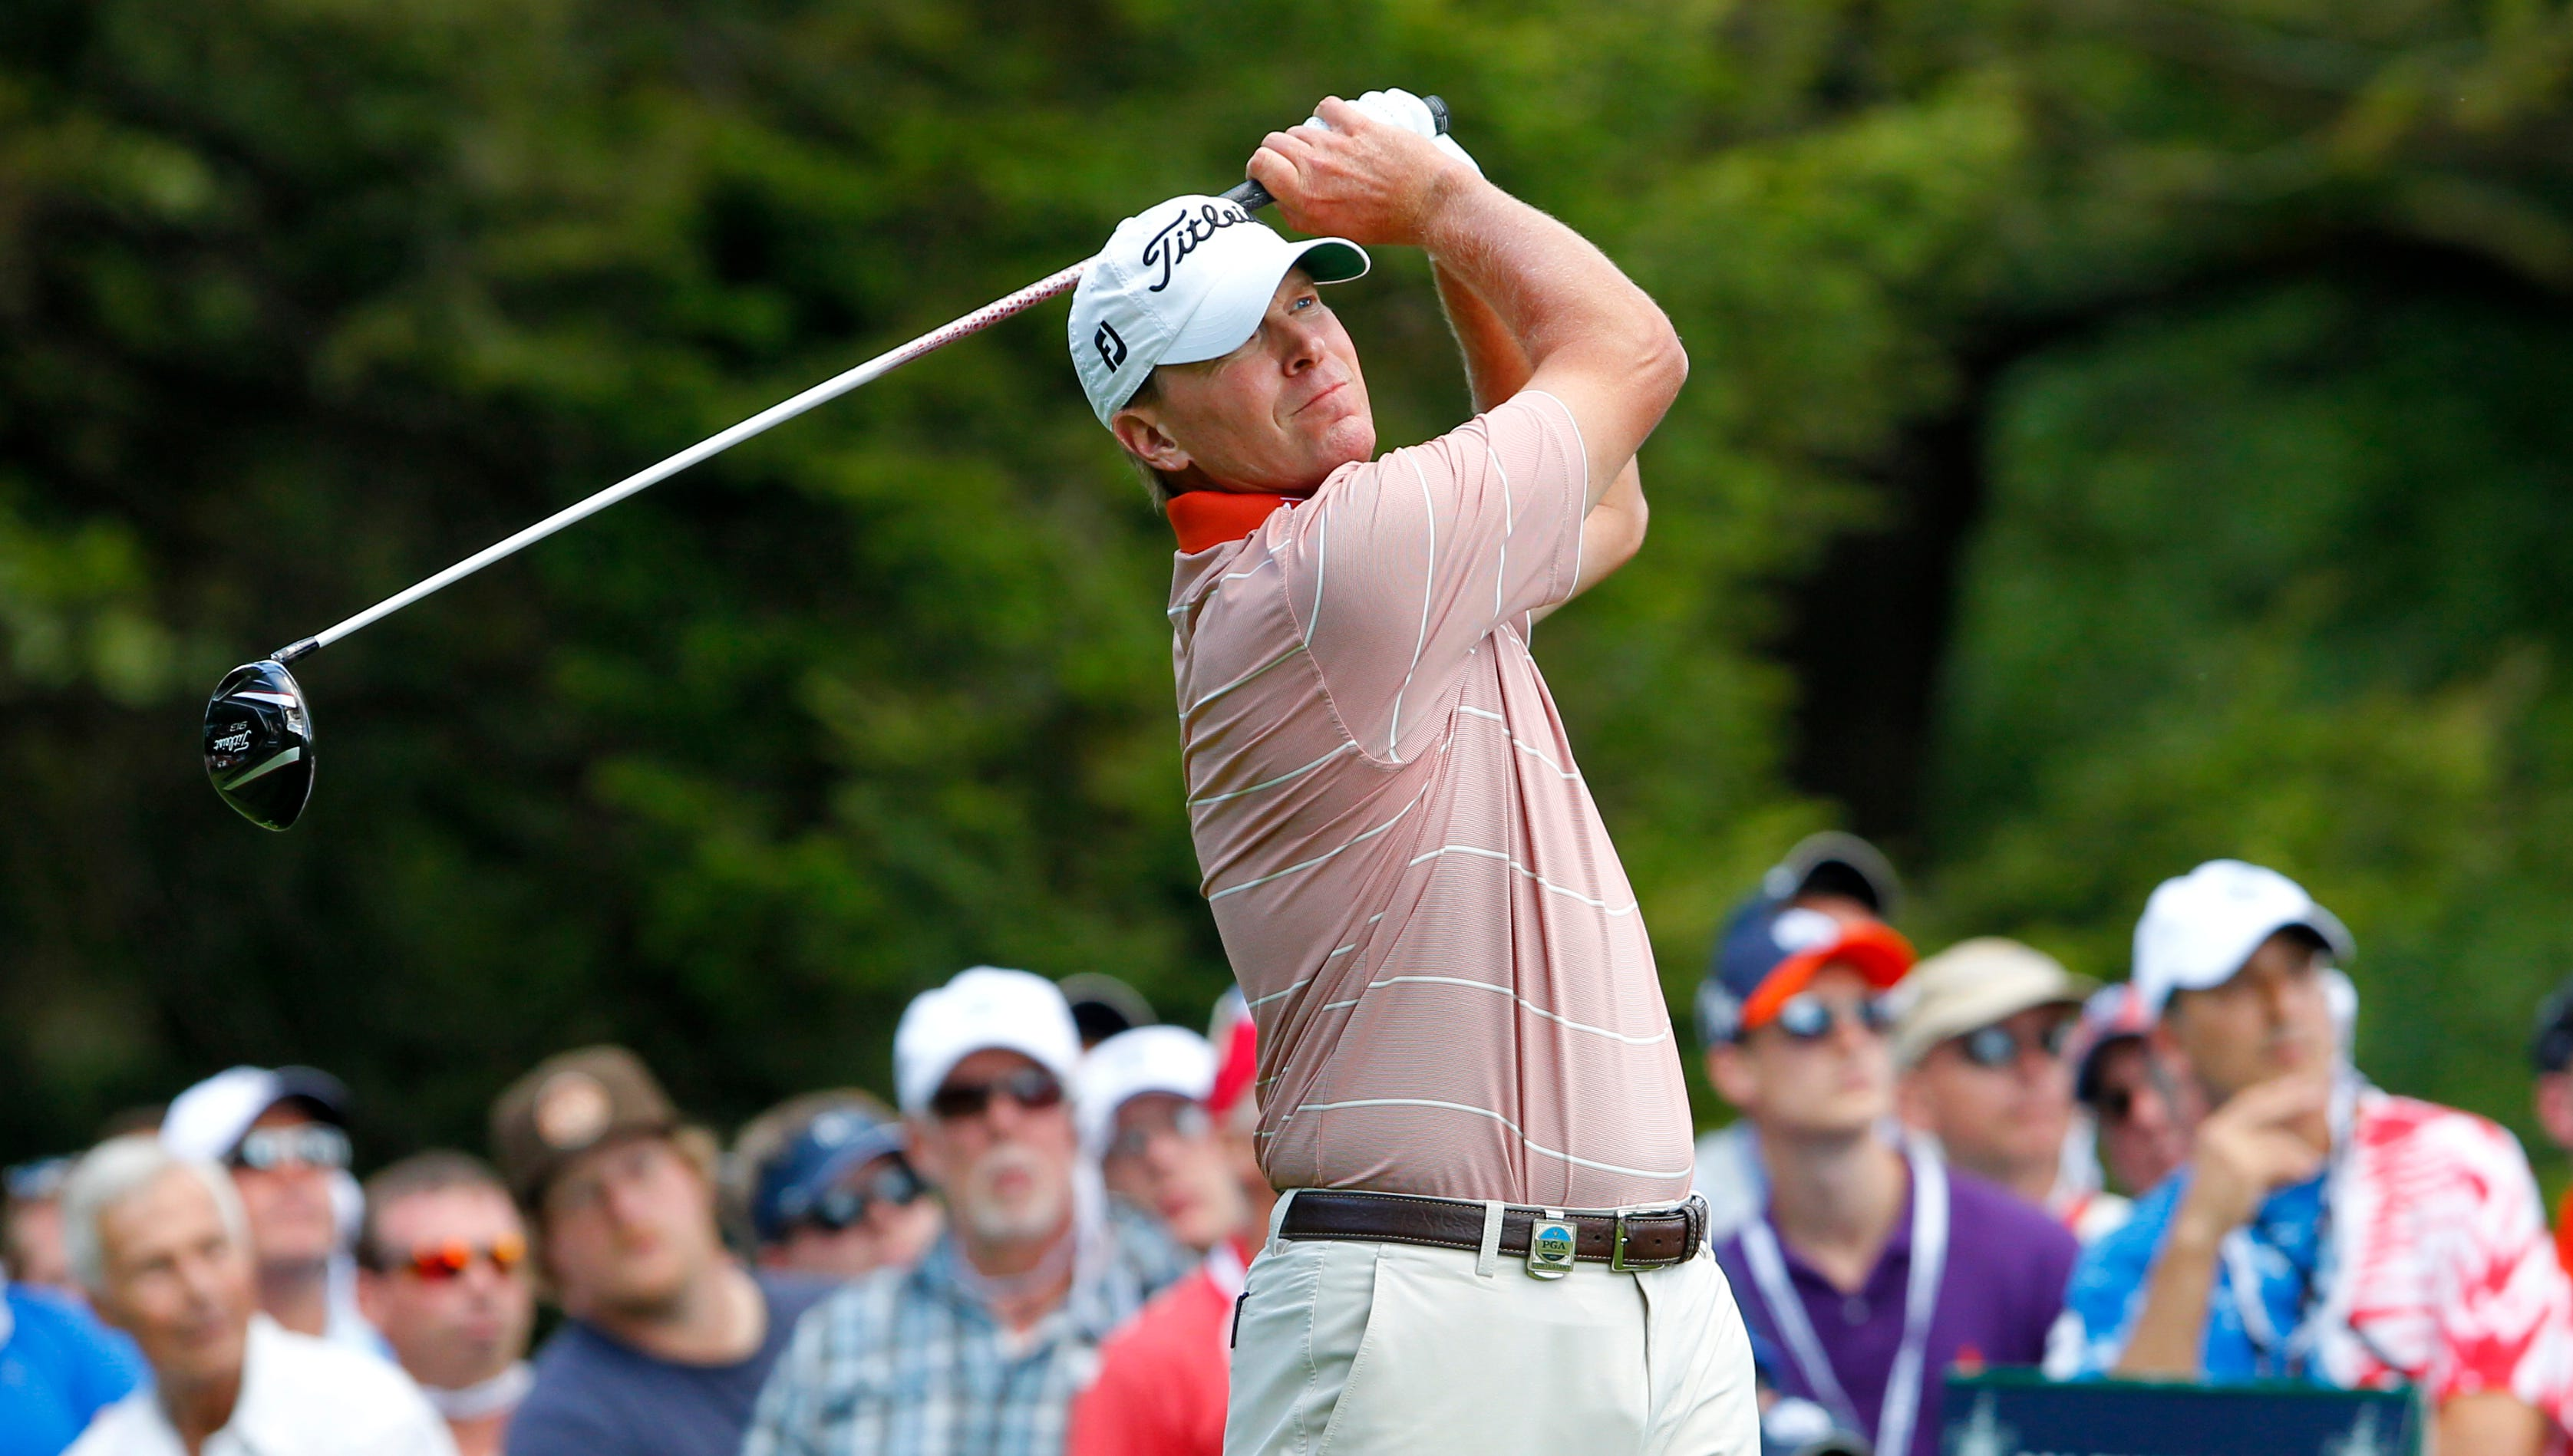 Steve Stricker on 8 during the final round of the 95th PGA Championship at Oak Hill in Pittsford, NY August 11, 2013.